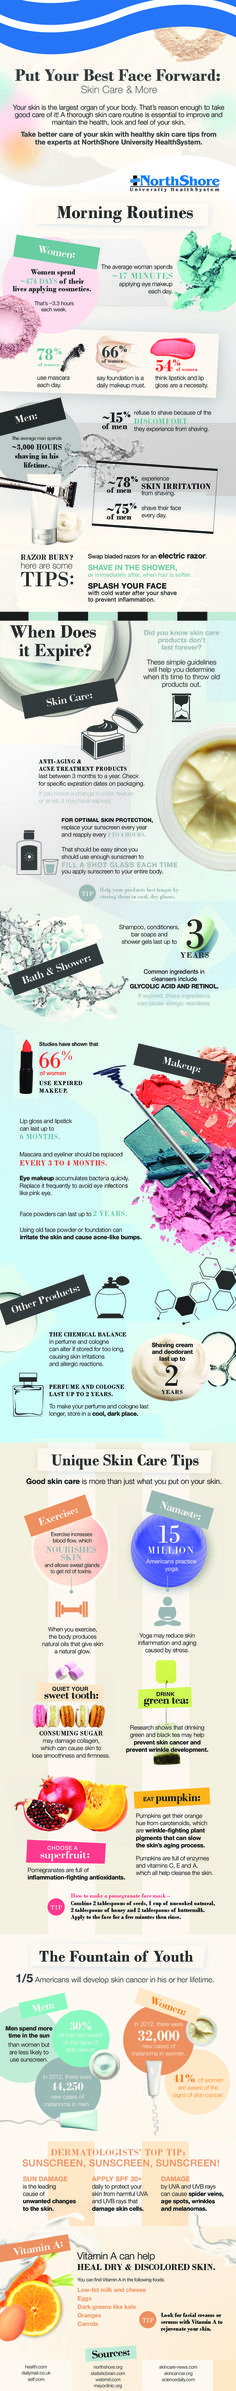 Infographic: Put Your Best Face Forward: Skin Care and More